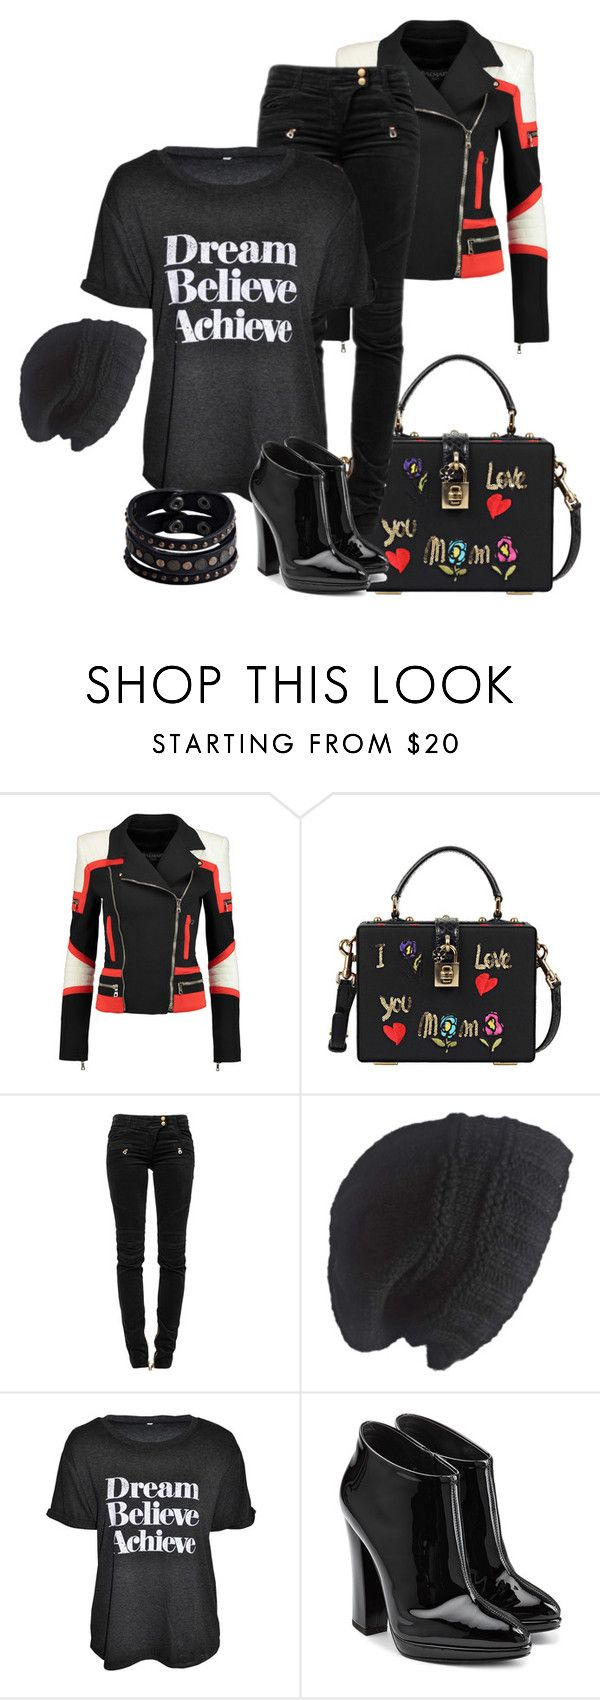 """Slogan Tops"" by eva-kouliaridou ❤ liked on Polyvore featuring Balmain, Dolce&Gabbana, Laundromat, Giuseppe Zanotti and Replay"